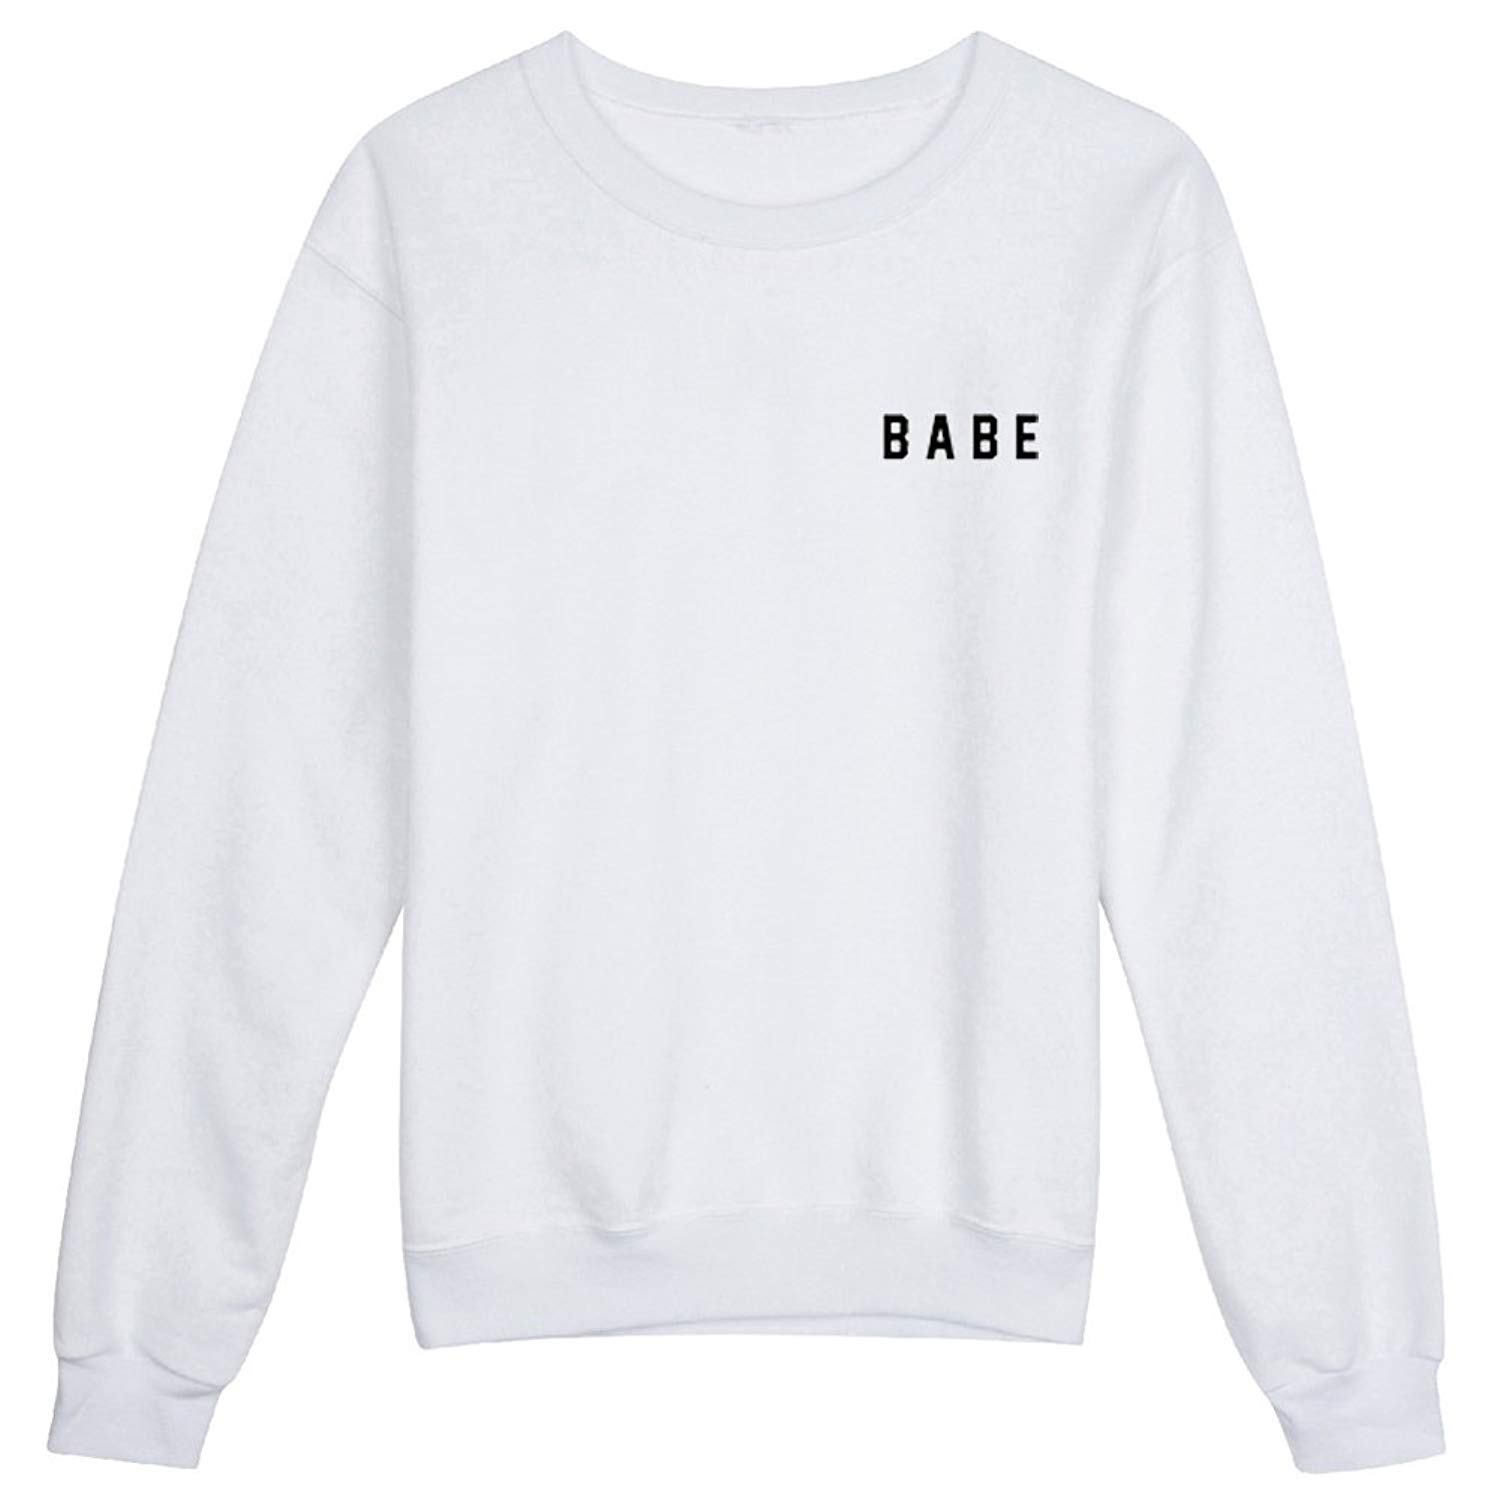 7923cd2a5805 Get Quotations · YITAN Women Graphic Cute Sweaters Funny Pullover Teen  Girls Sweatshirts